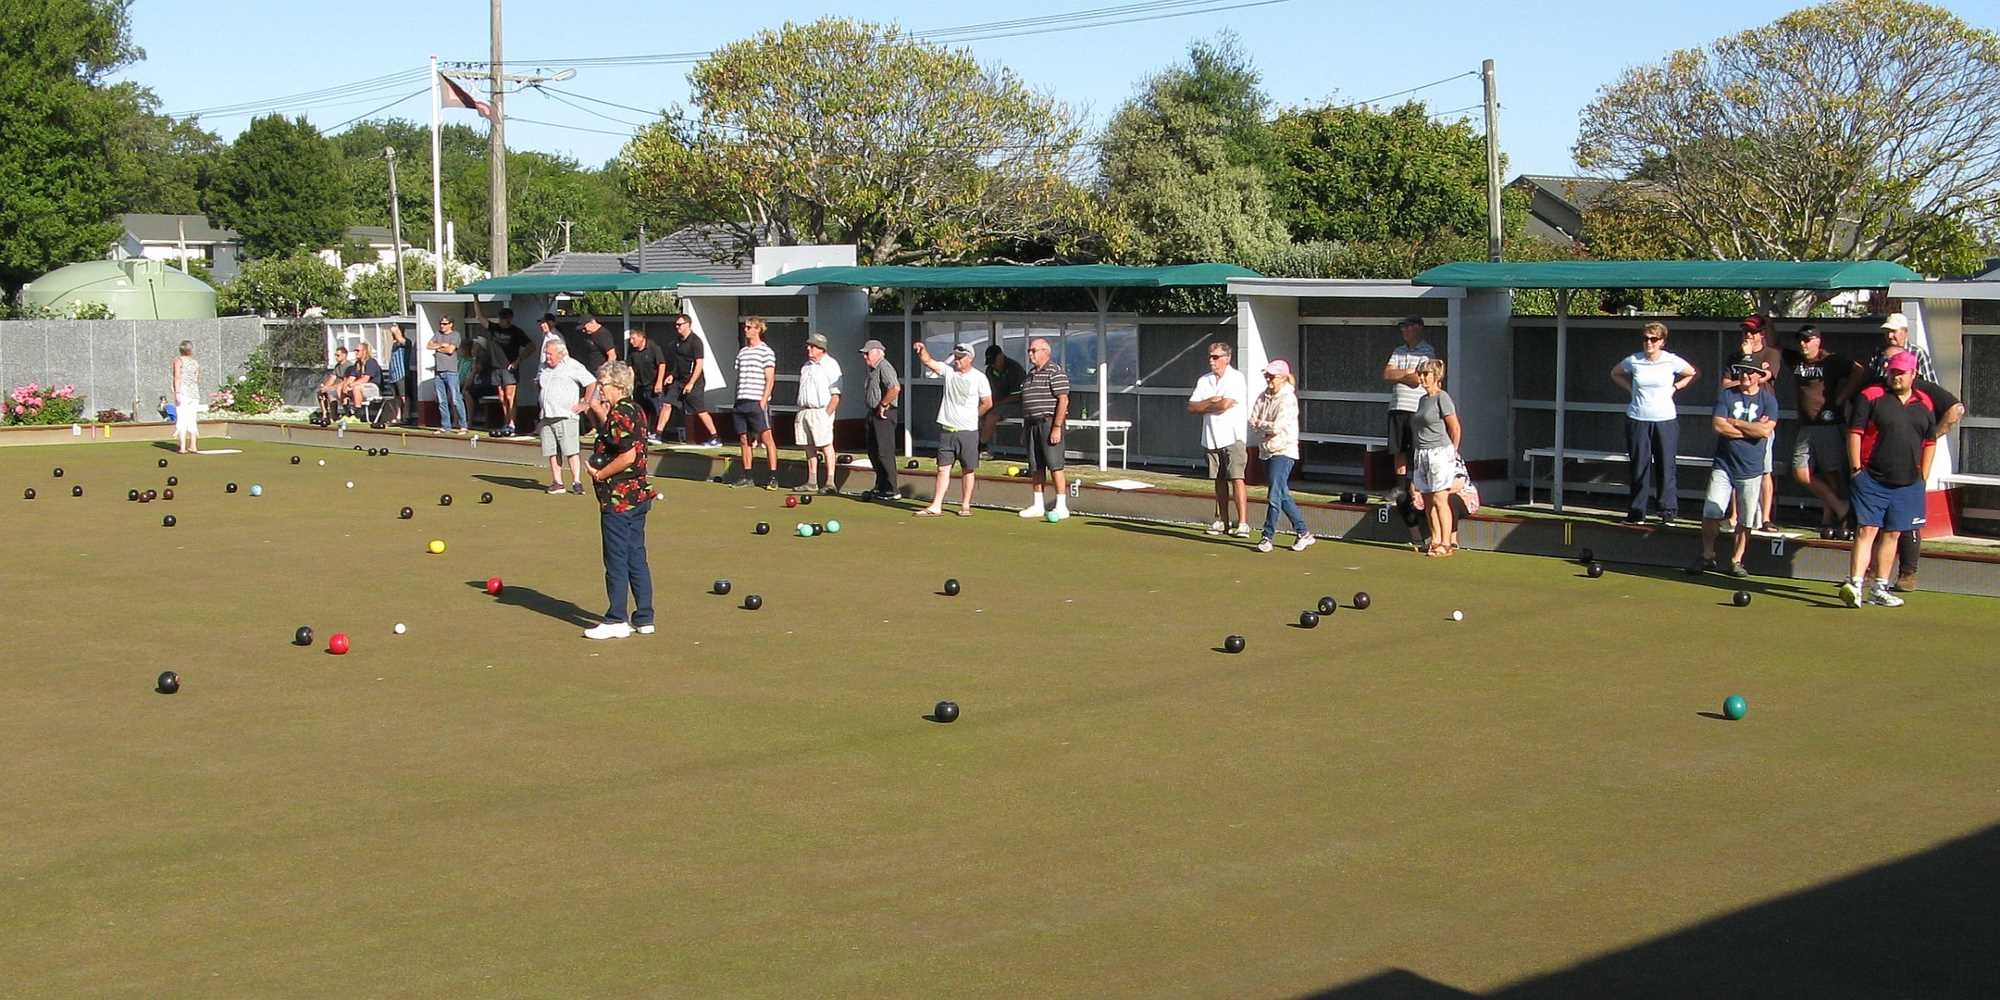 Community Bowls 10 February 2020 - Great Bowling in the Evening Sun